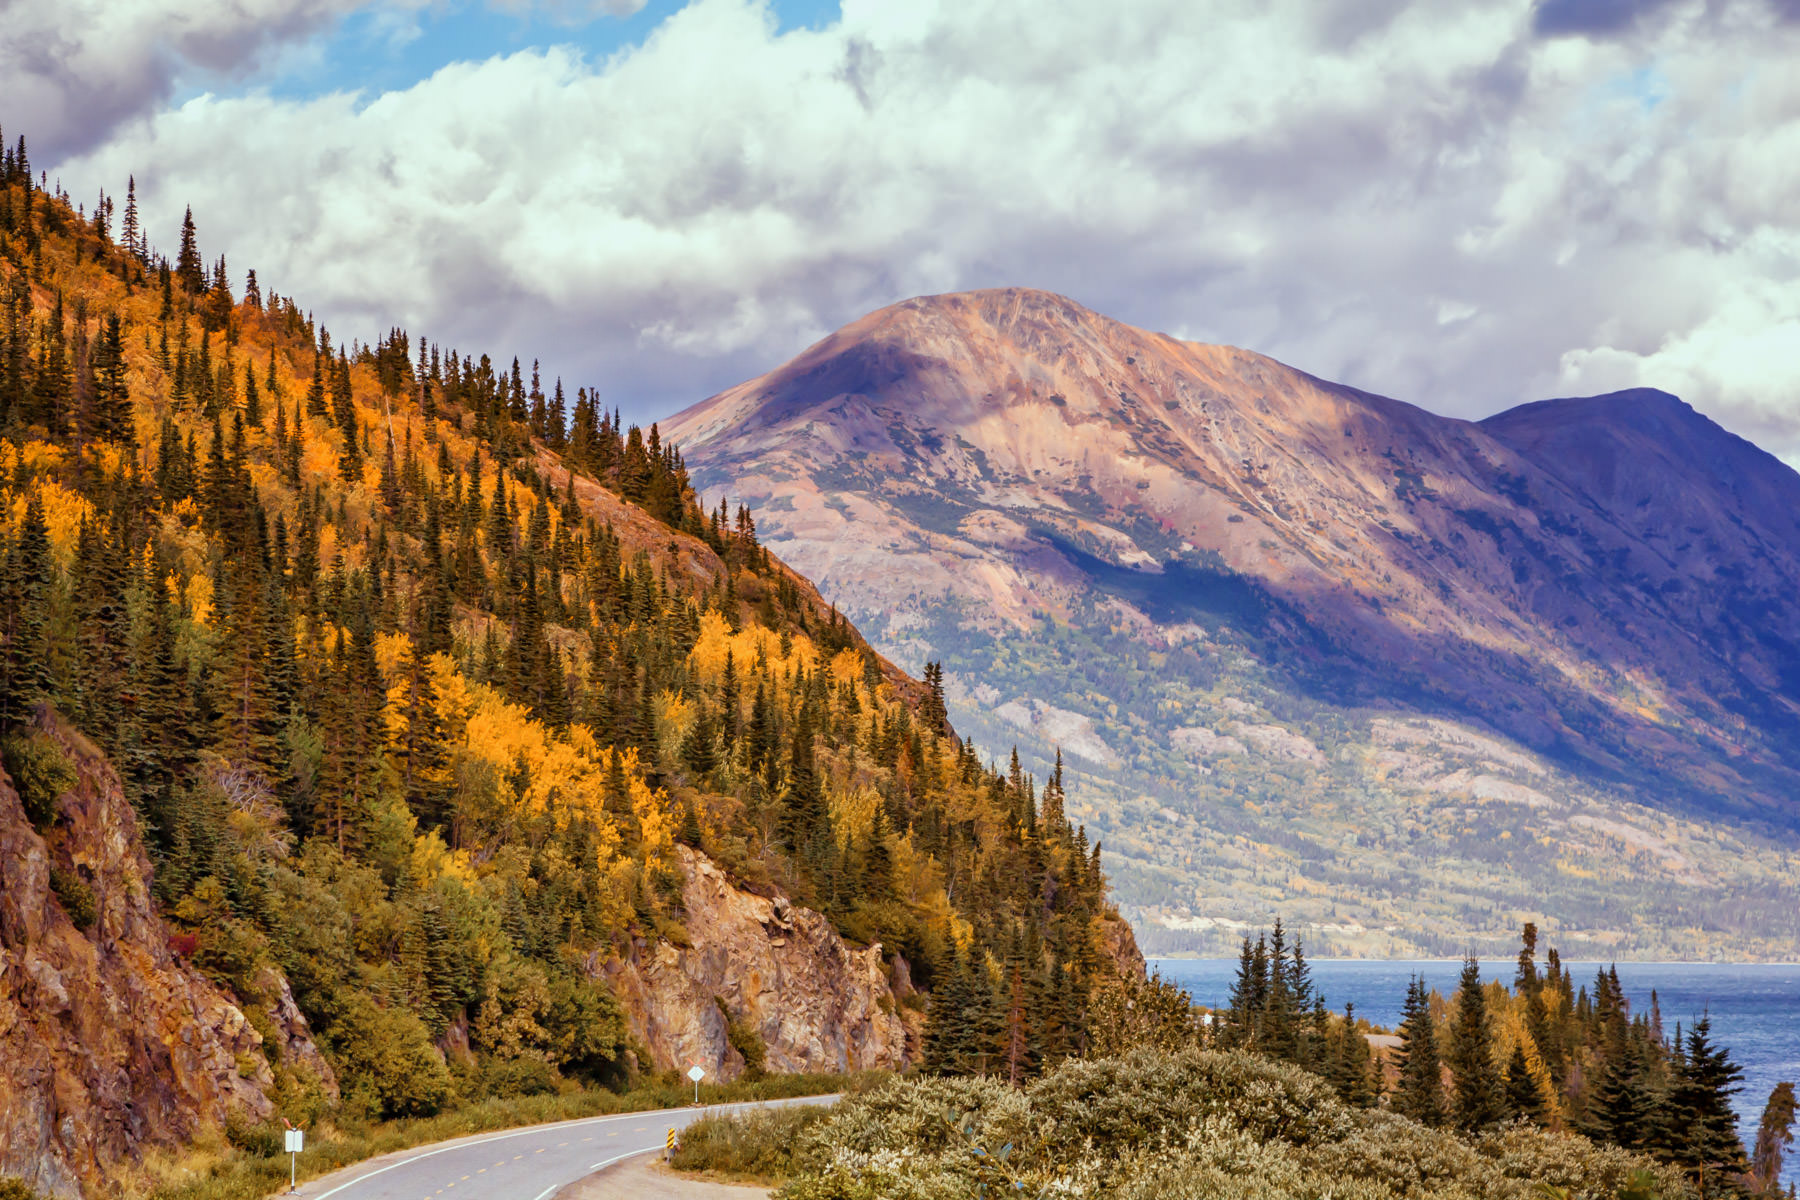 The Klondike Highway creeps around mountains along the shore of Tutshi Lake in British Columbia's Stikine Region.